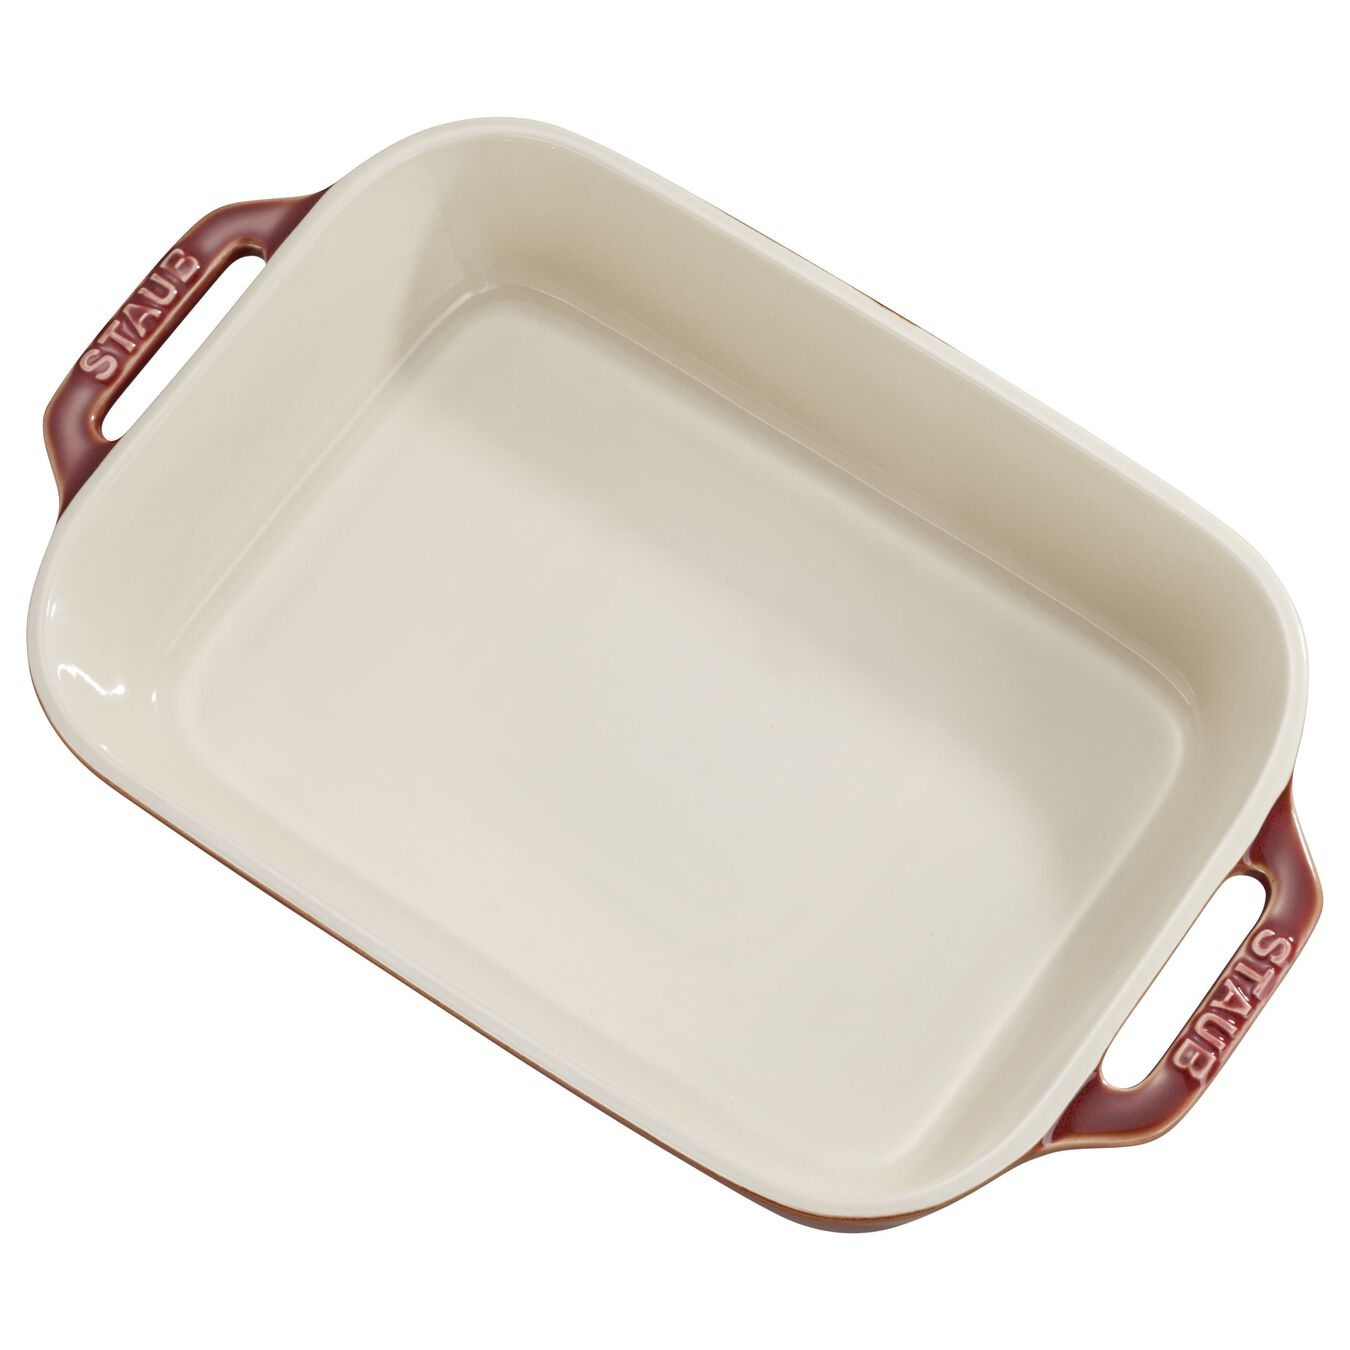 2-pc, square, Bakeware set, red,,large 1